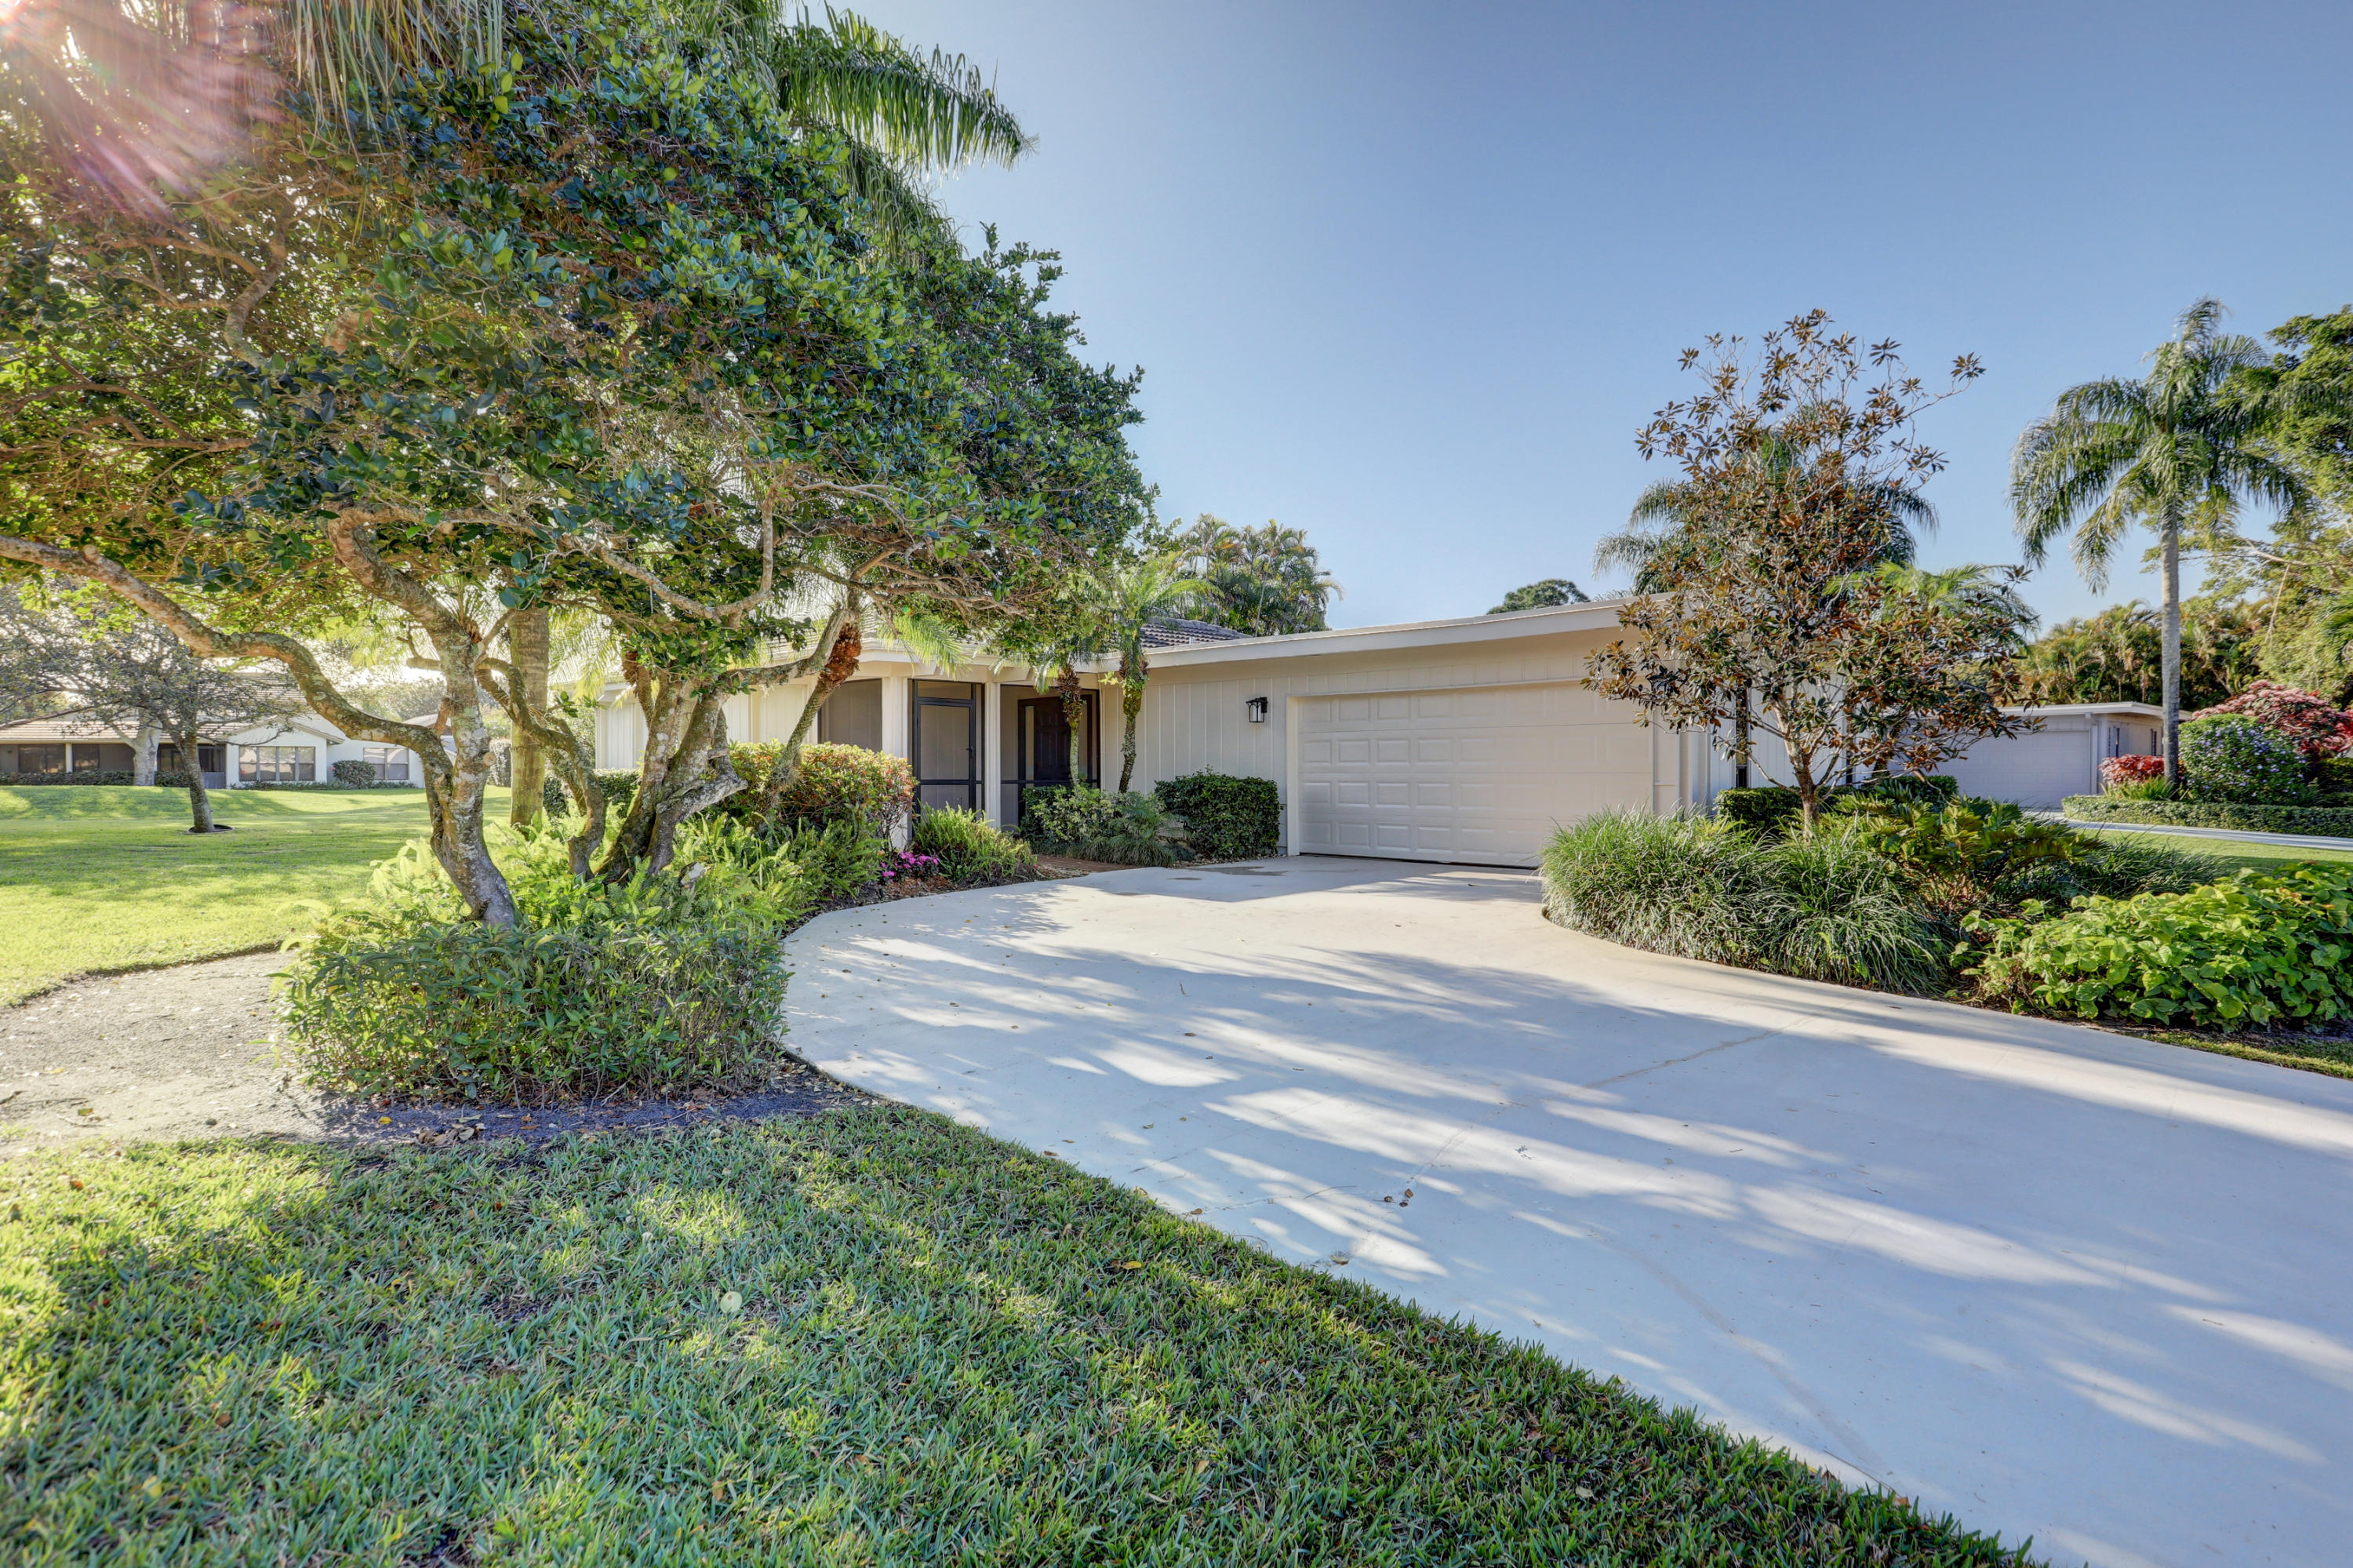 13224 Sand Grouse Court, Palm Beach Gardens, Florida 33418, 3 Bedrooms Bedrooms, ,2 BathroomsBathrooms,A,Single family,Sand Grouse,RX-10501236